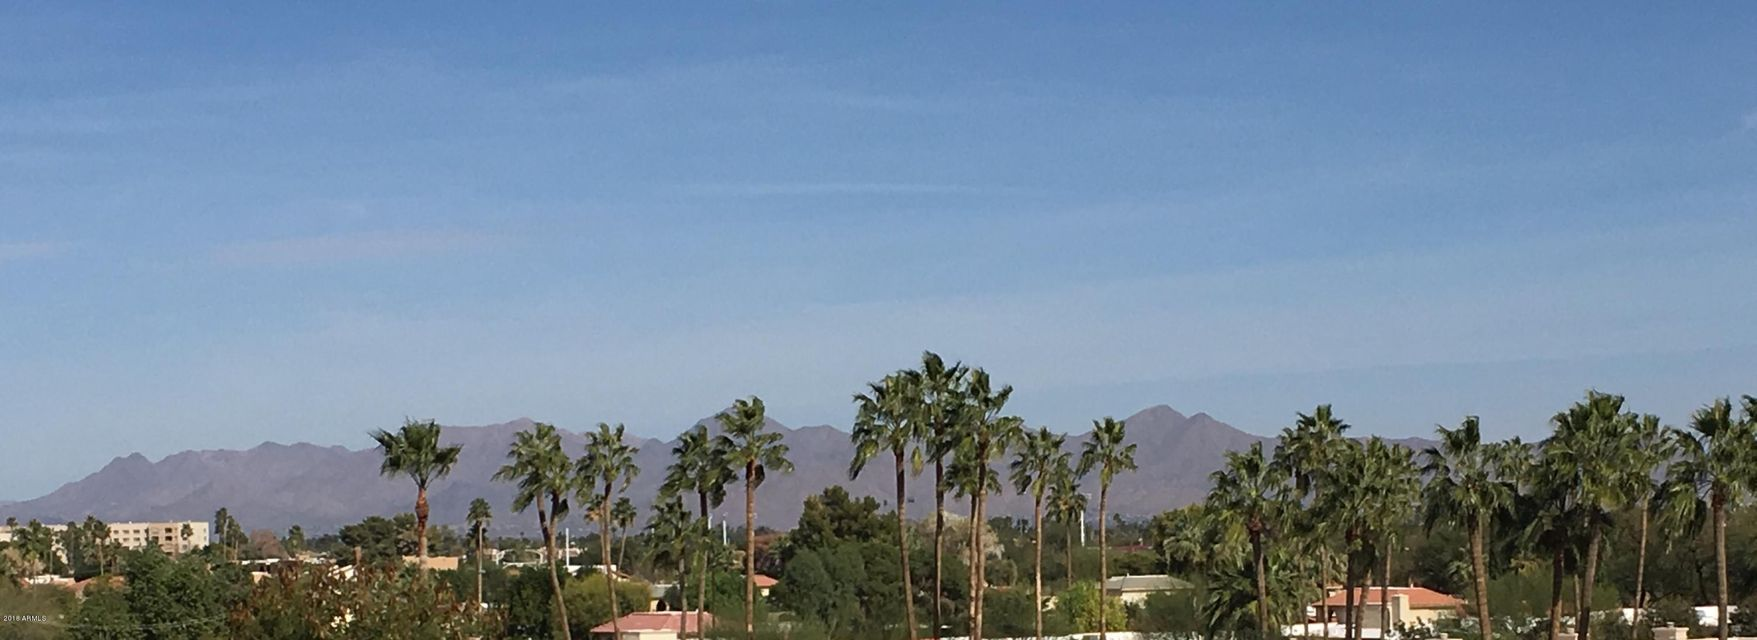 7788 E Main Street Unit D-1010 Scottsdale, AZ 85251 - MLS #: 5641097